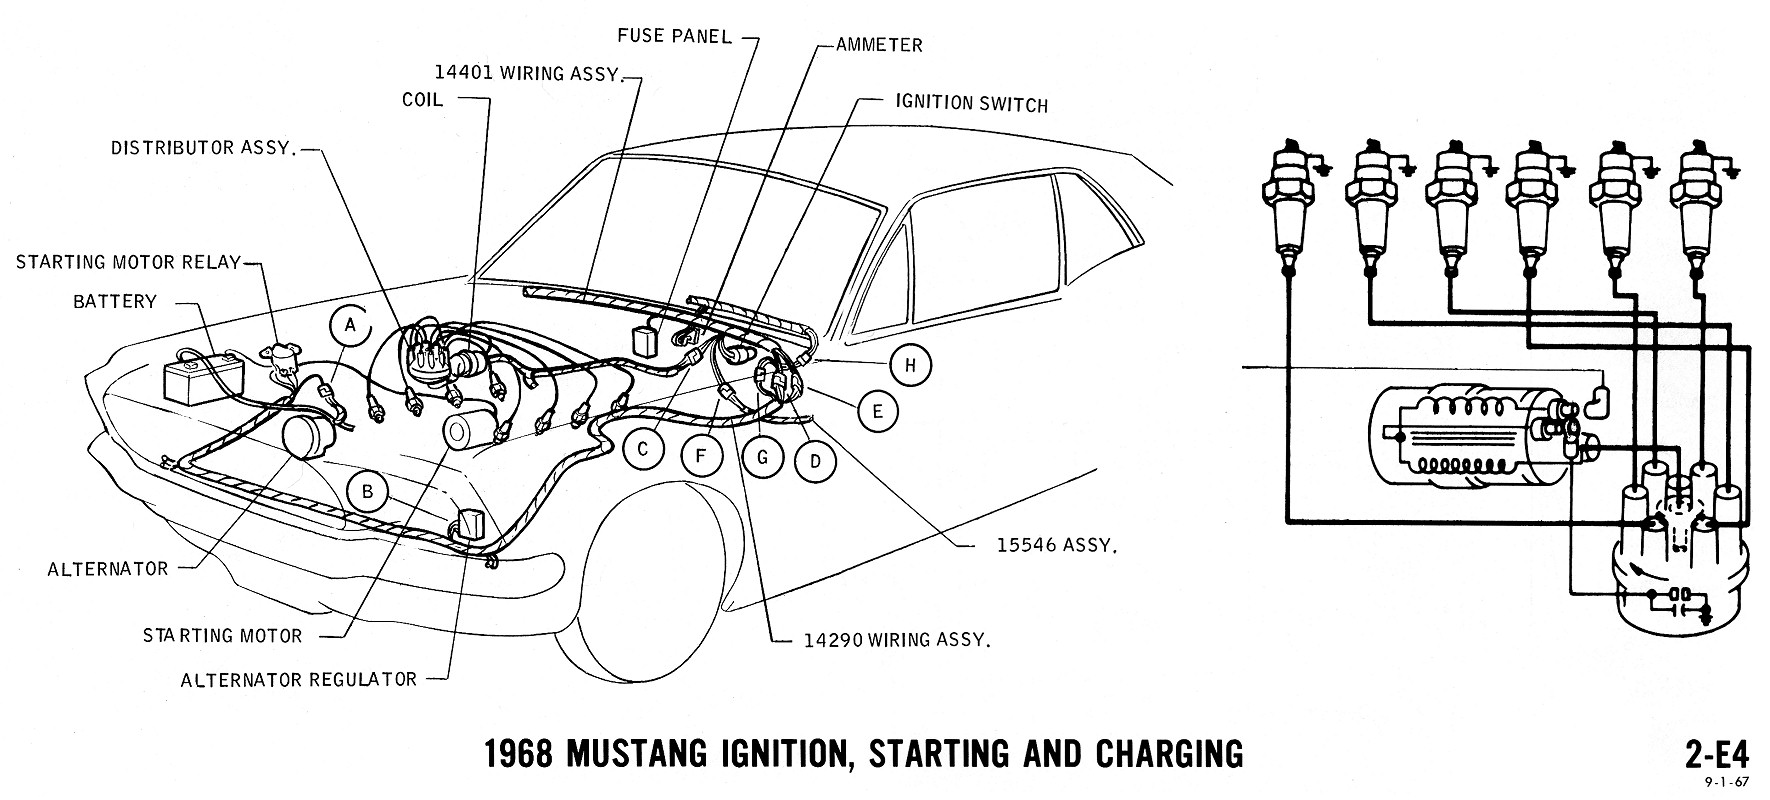 1968 Mustang Wiring Diagrams And Vacuum Schematics Average Joe 1974 Jeep Alternator Harness Diagram Ignition Starting Charging 2